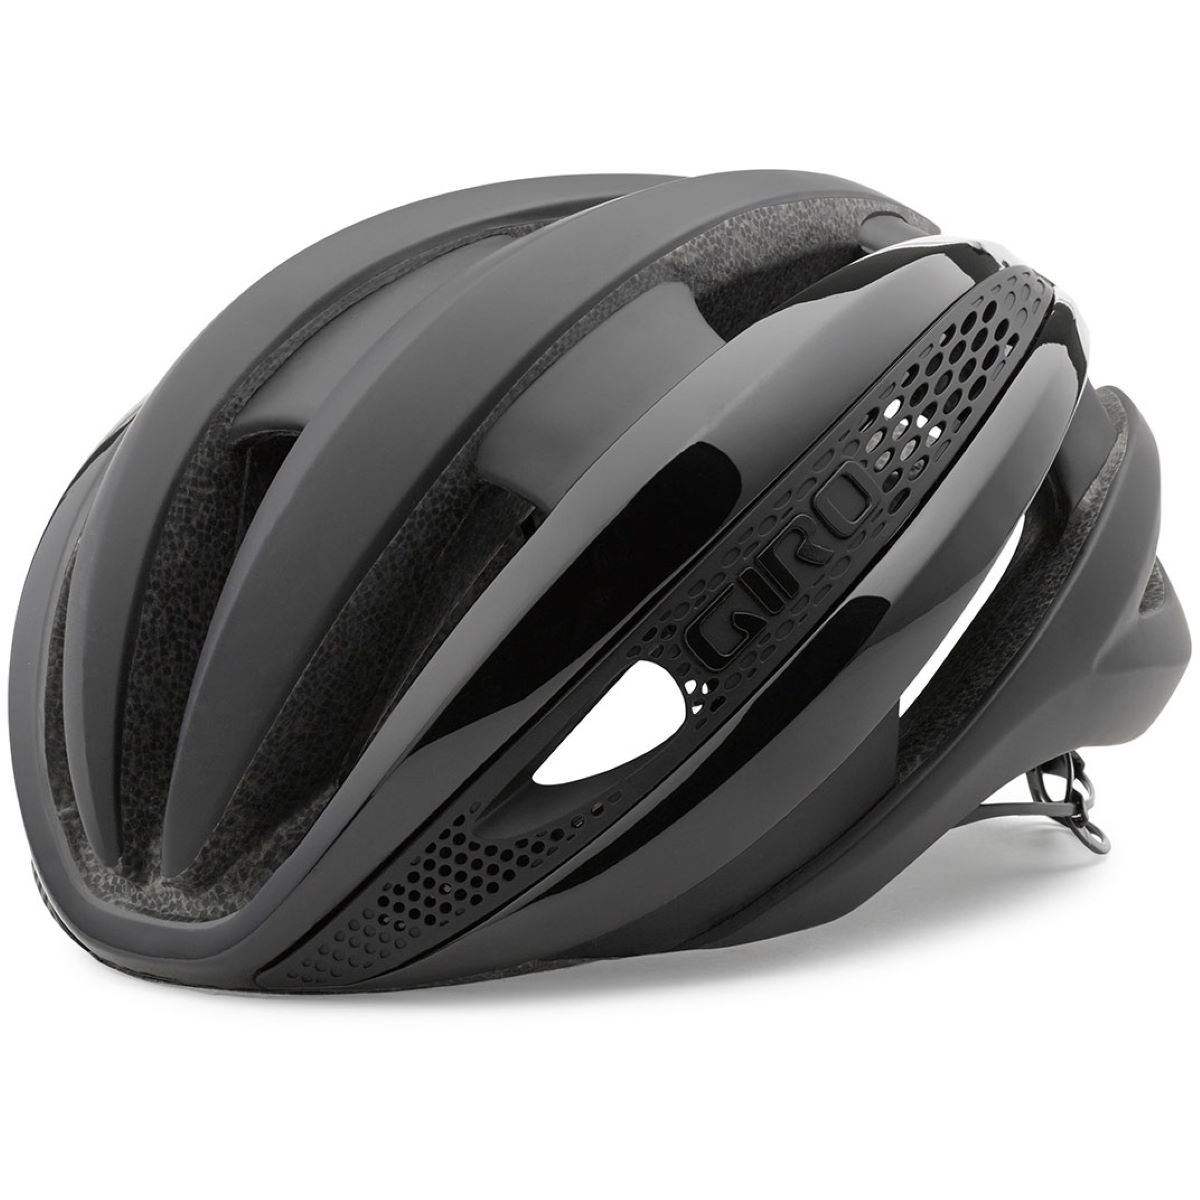 Casque Giro Synthe - Medium 55-59cm Noir mat Casques de route